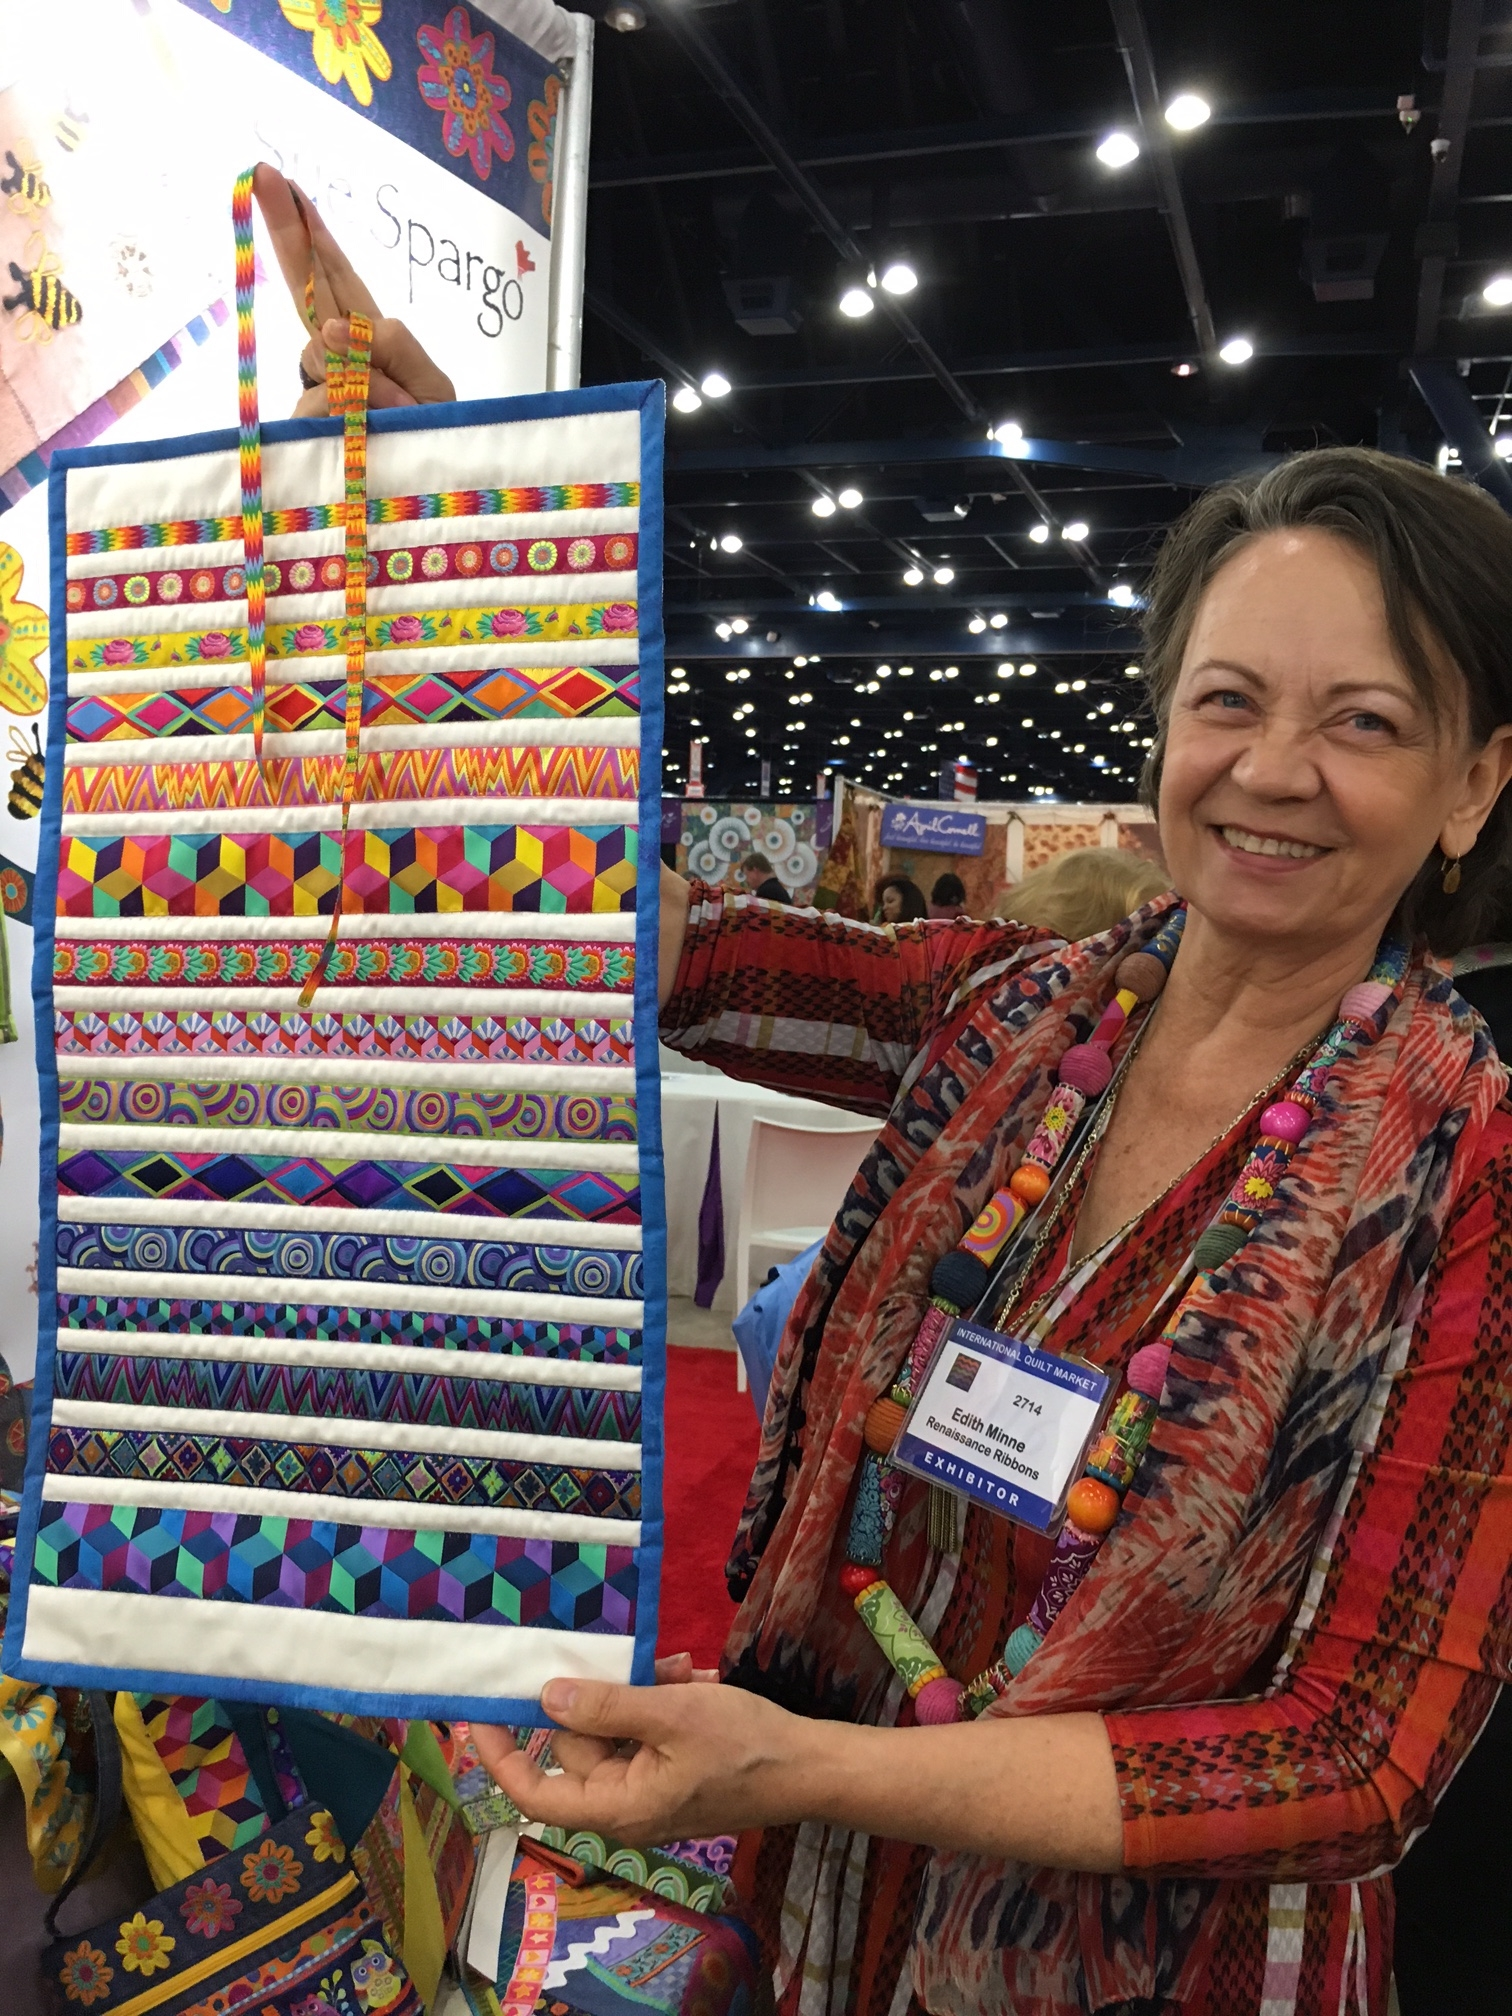 Edith Minne of Renaissance Ribbons displays her Kaffe Fassett Collective ribbons.